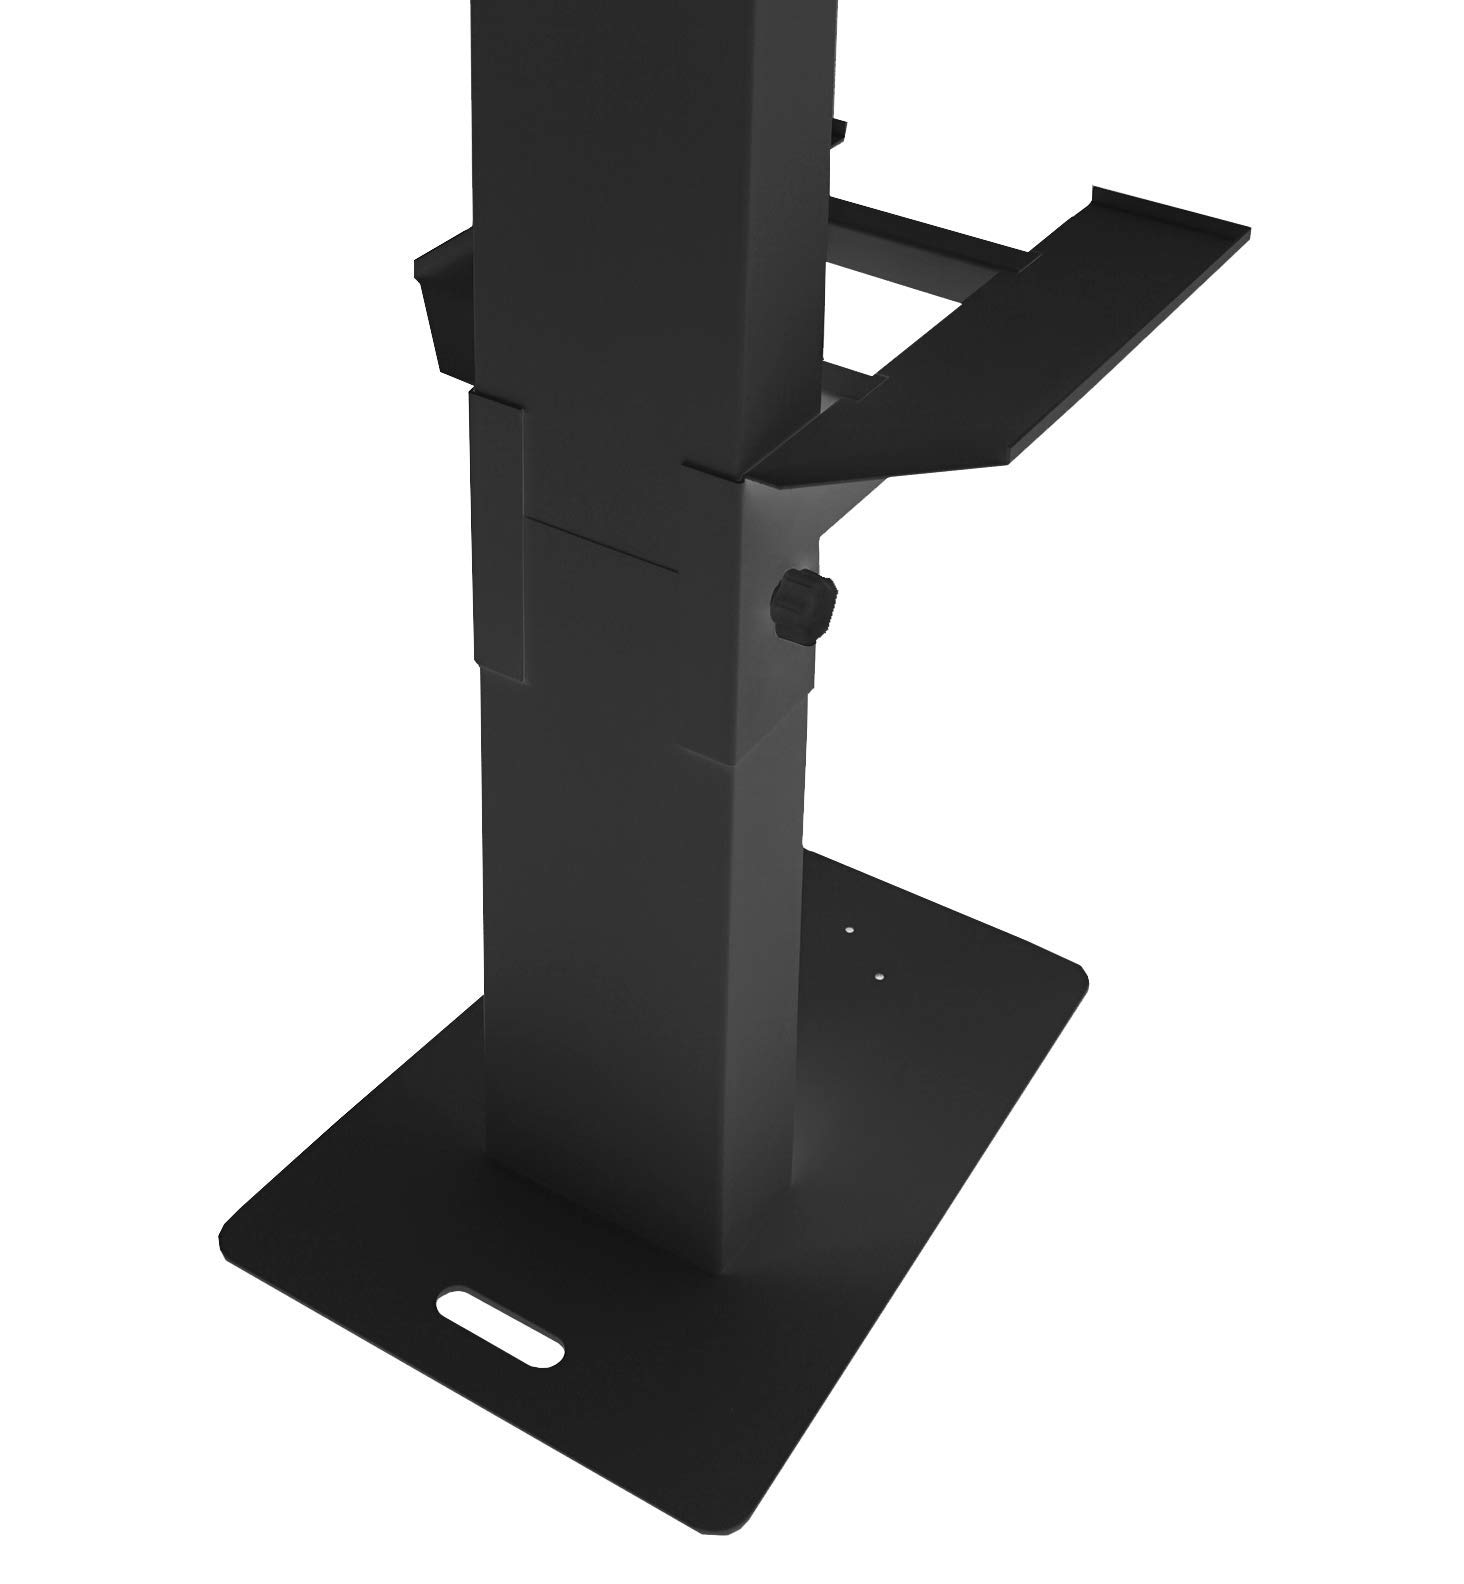 T- Series Black Printer Shelf for T12 3.0 Eco Planar / T12 LED / T17 4.0 / T20 2.0 Eco Planar / T20R 2.0 Photobooth Shell